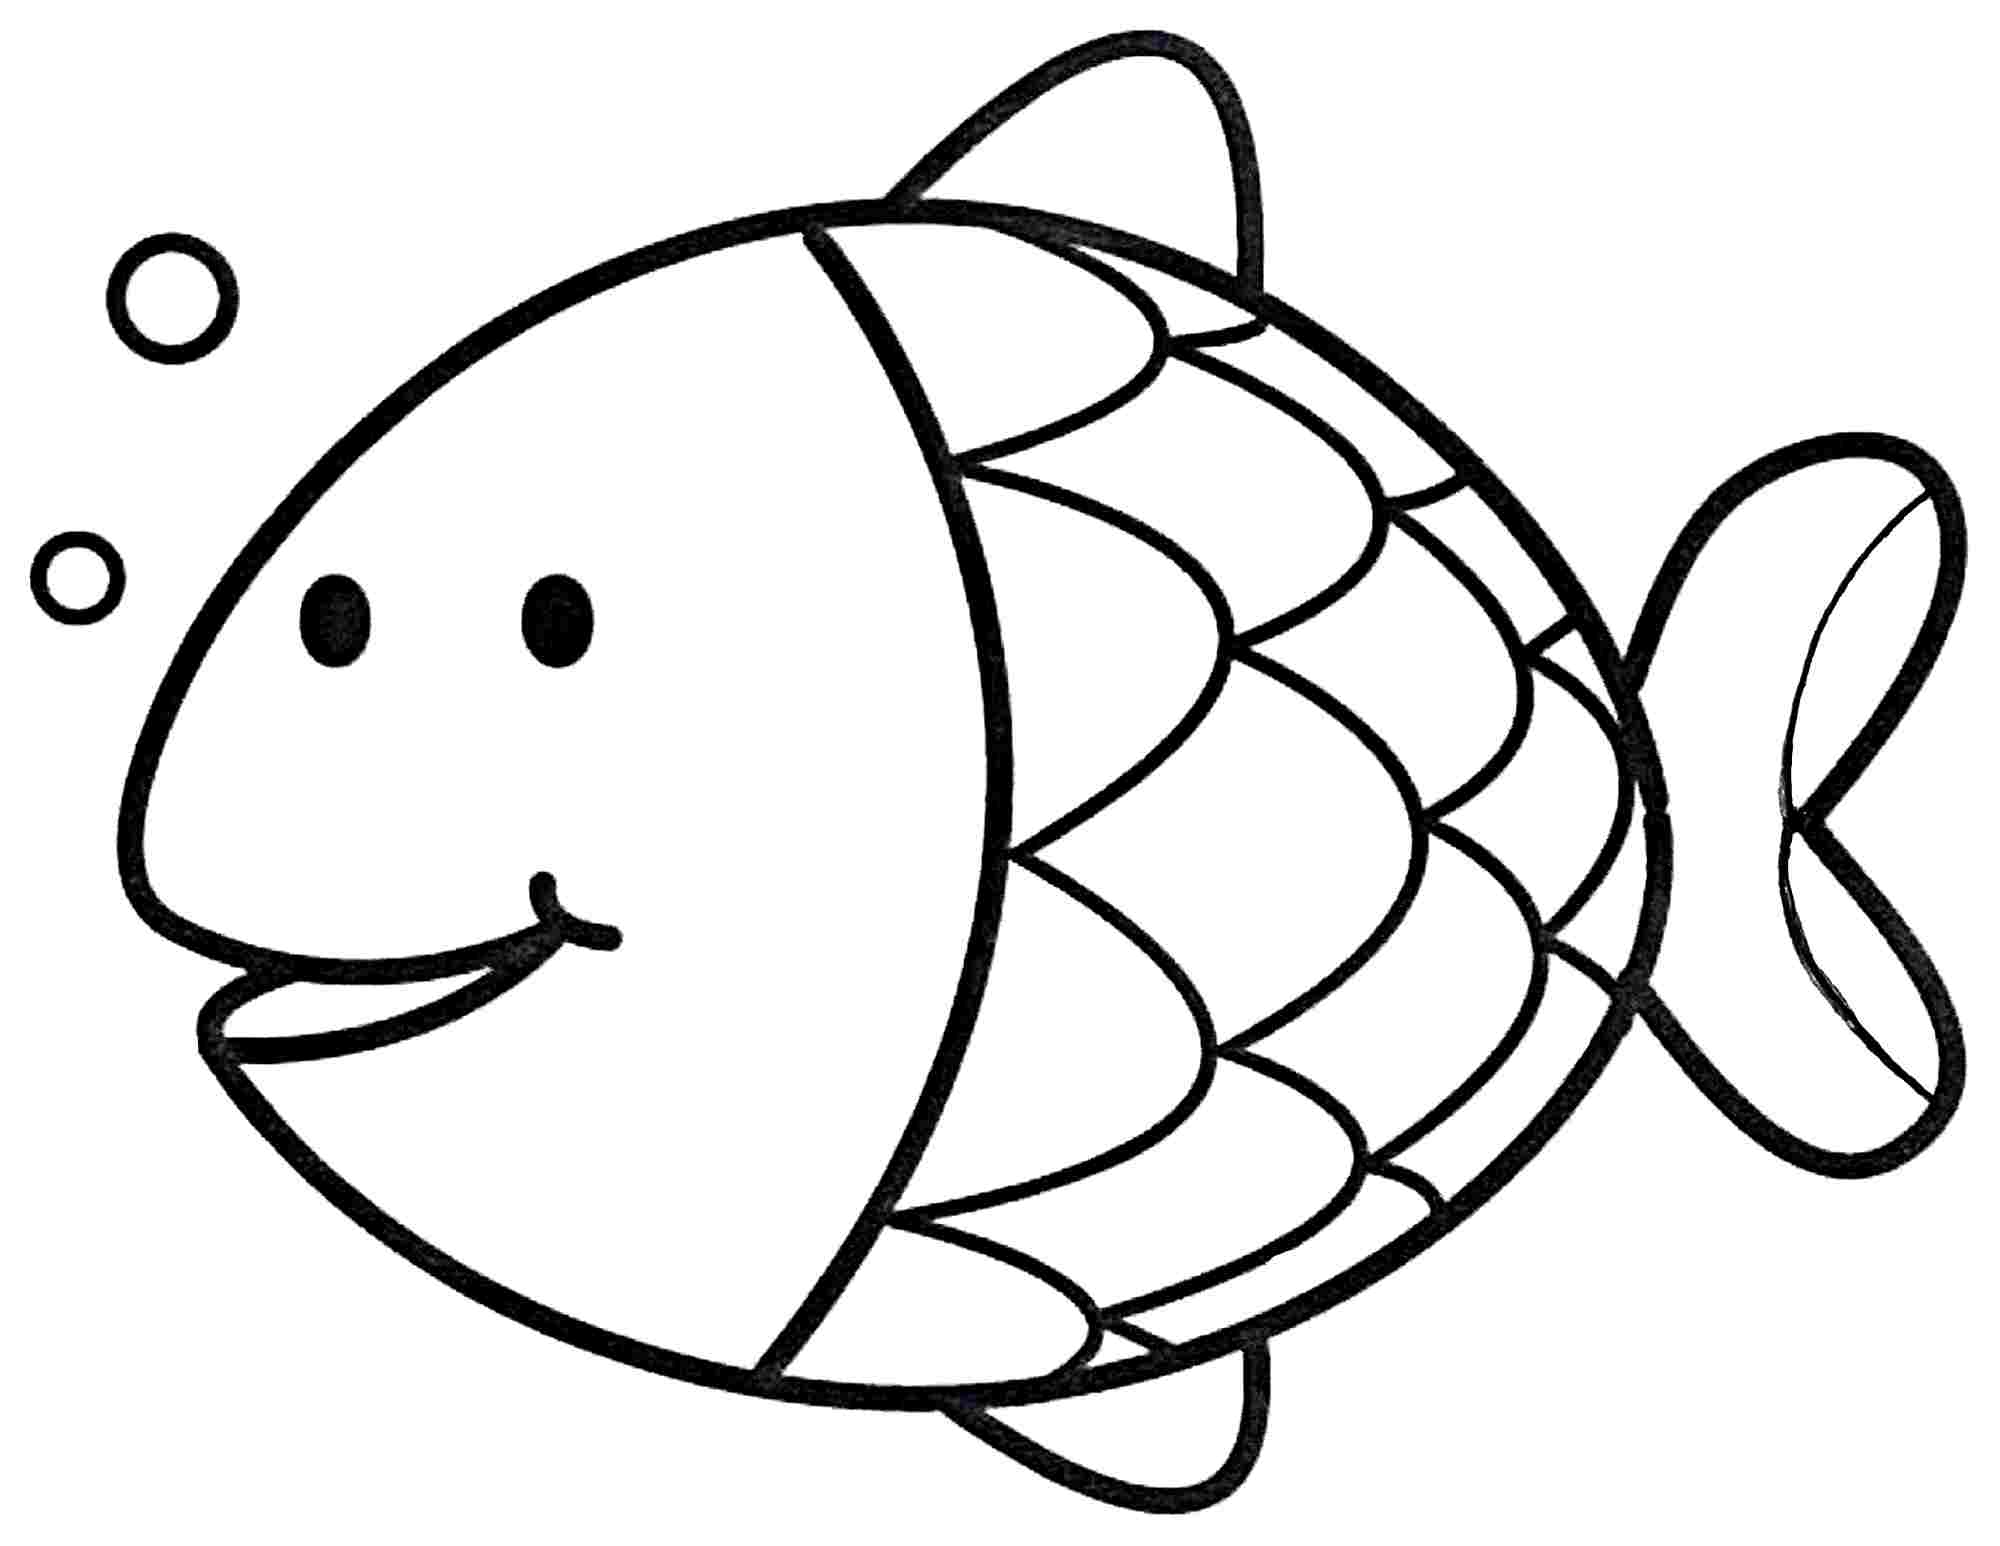 fish to color simple fish coloring pages download and print for free color to fish